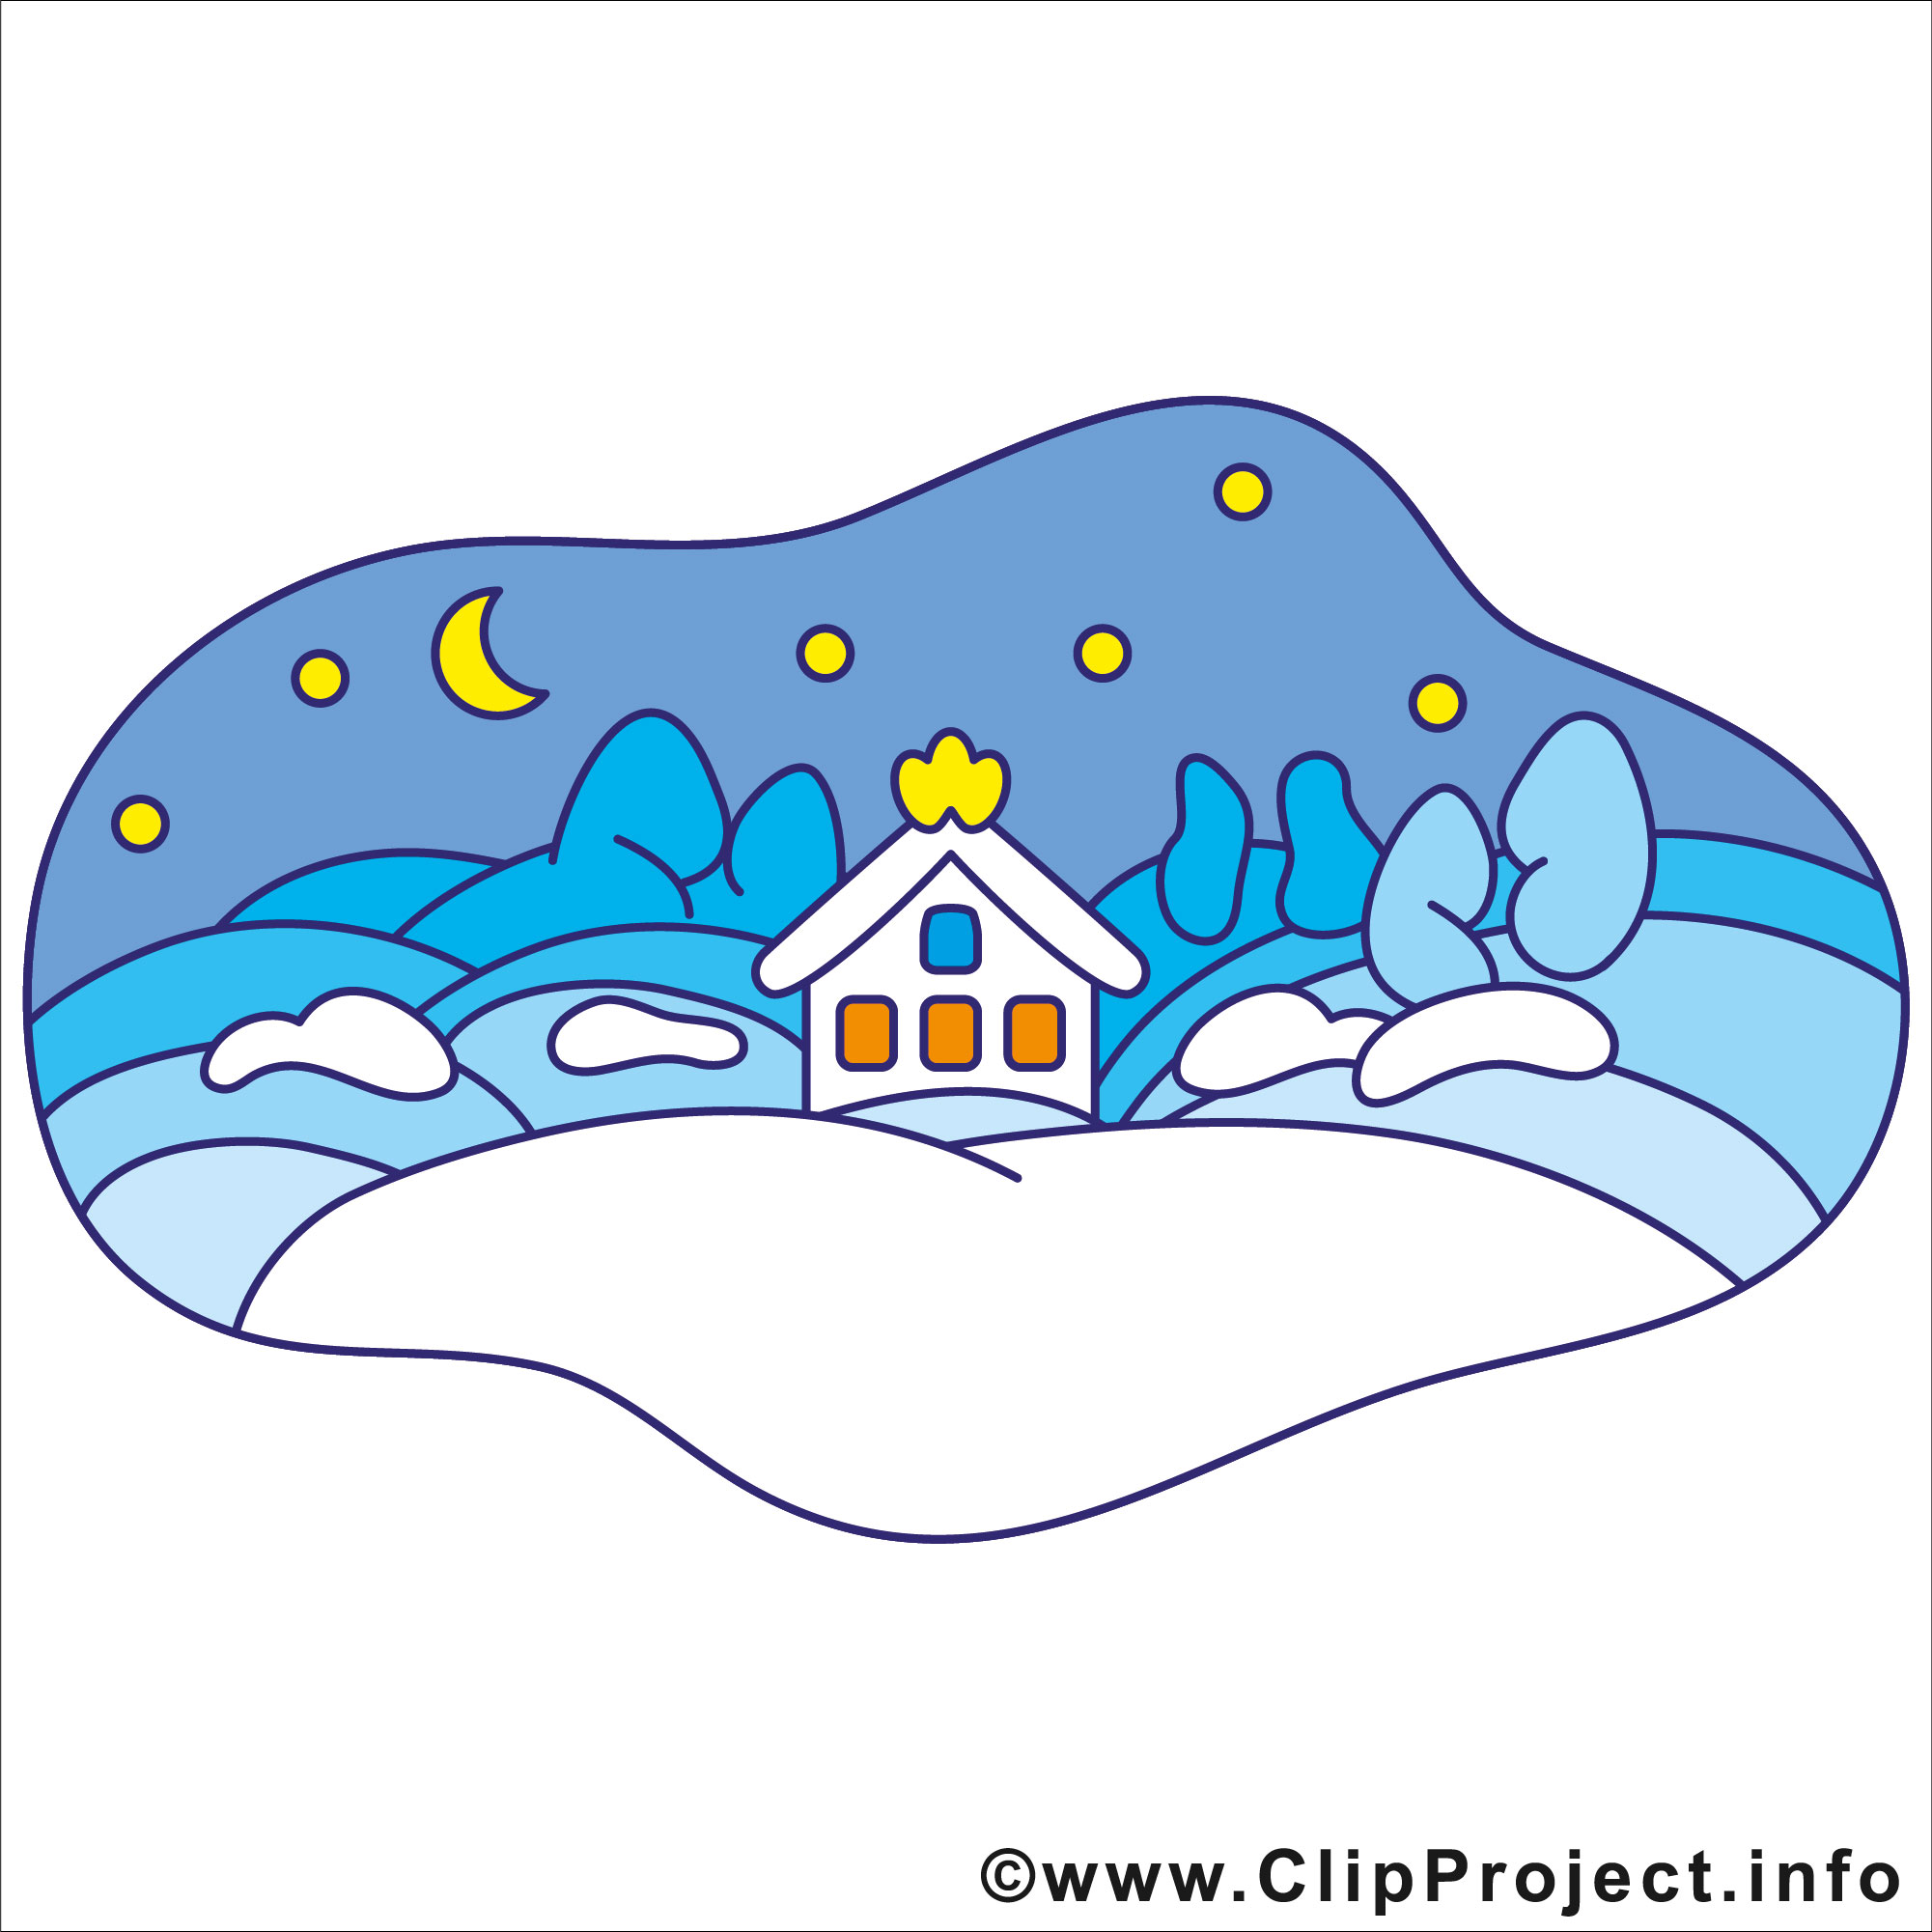 Happy holidays winter clipart image #10106.